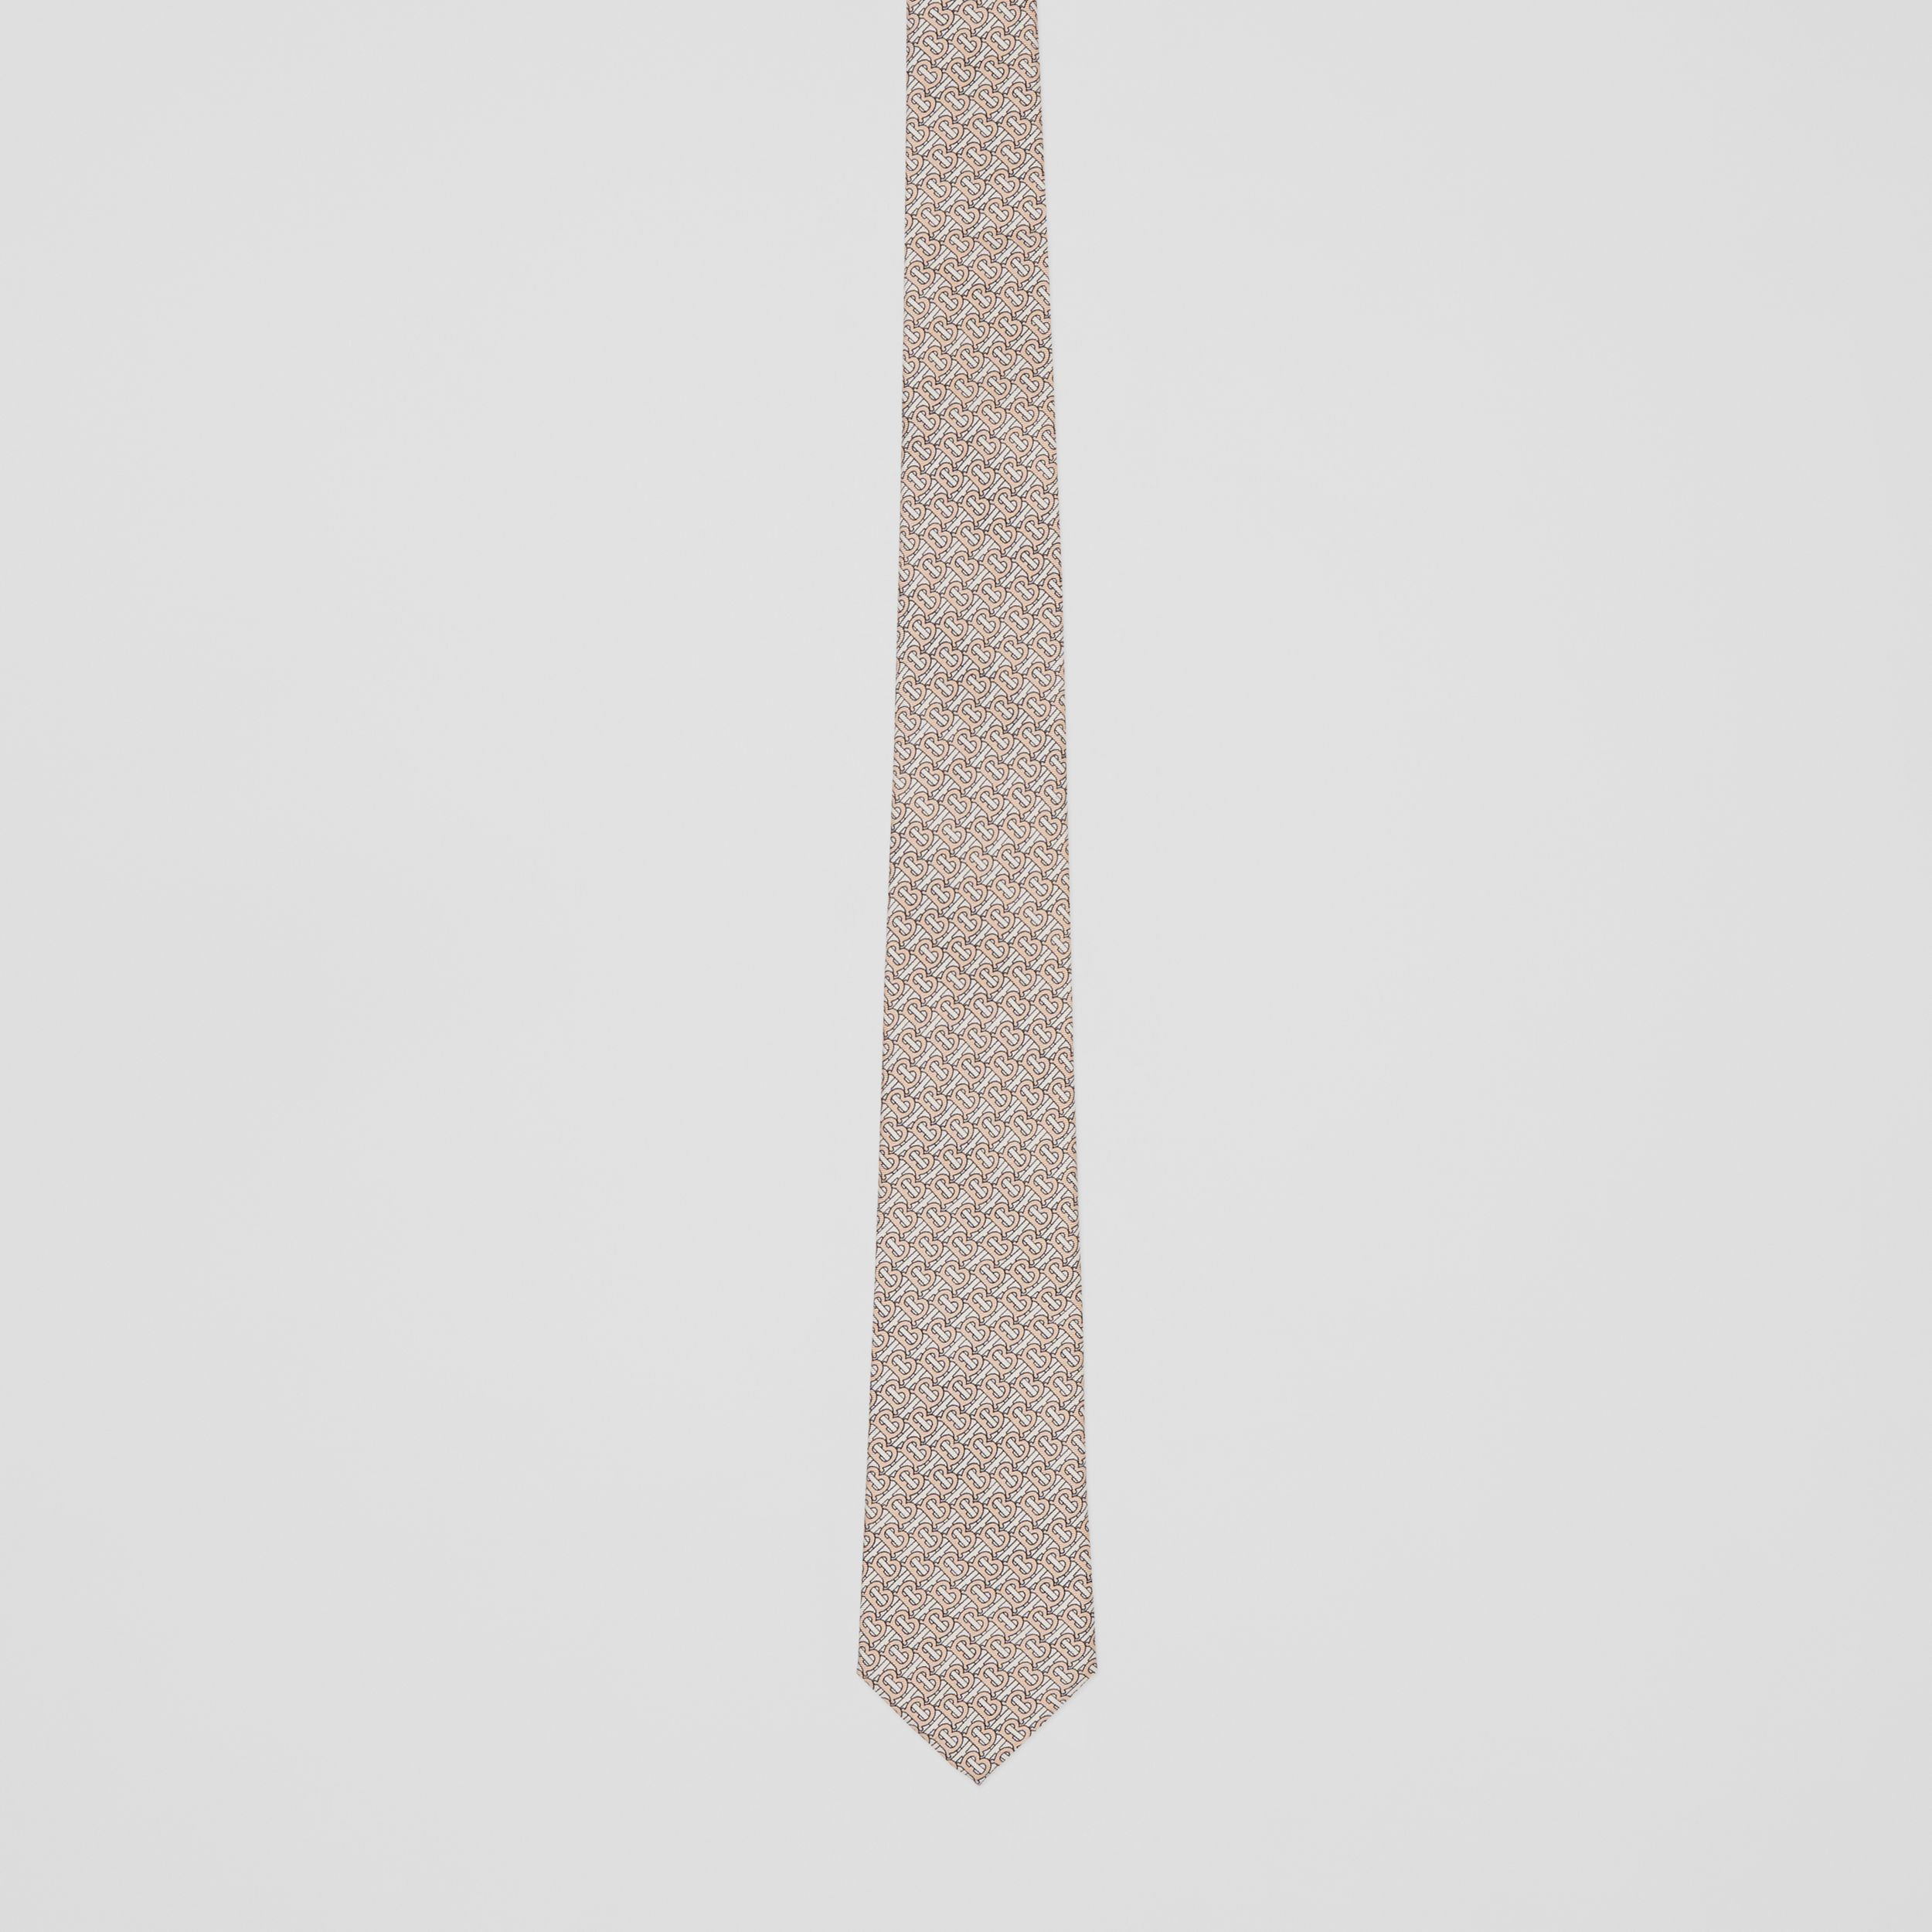 Classic Cut Monogram Silk Jacquard Tie in Blush Pink - Men | Burberry - 4